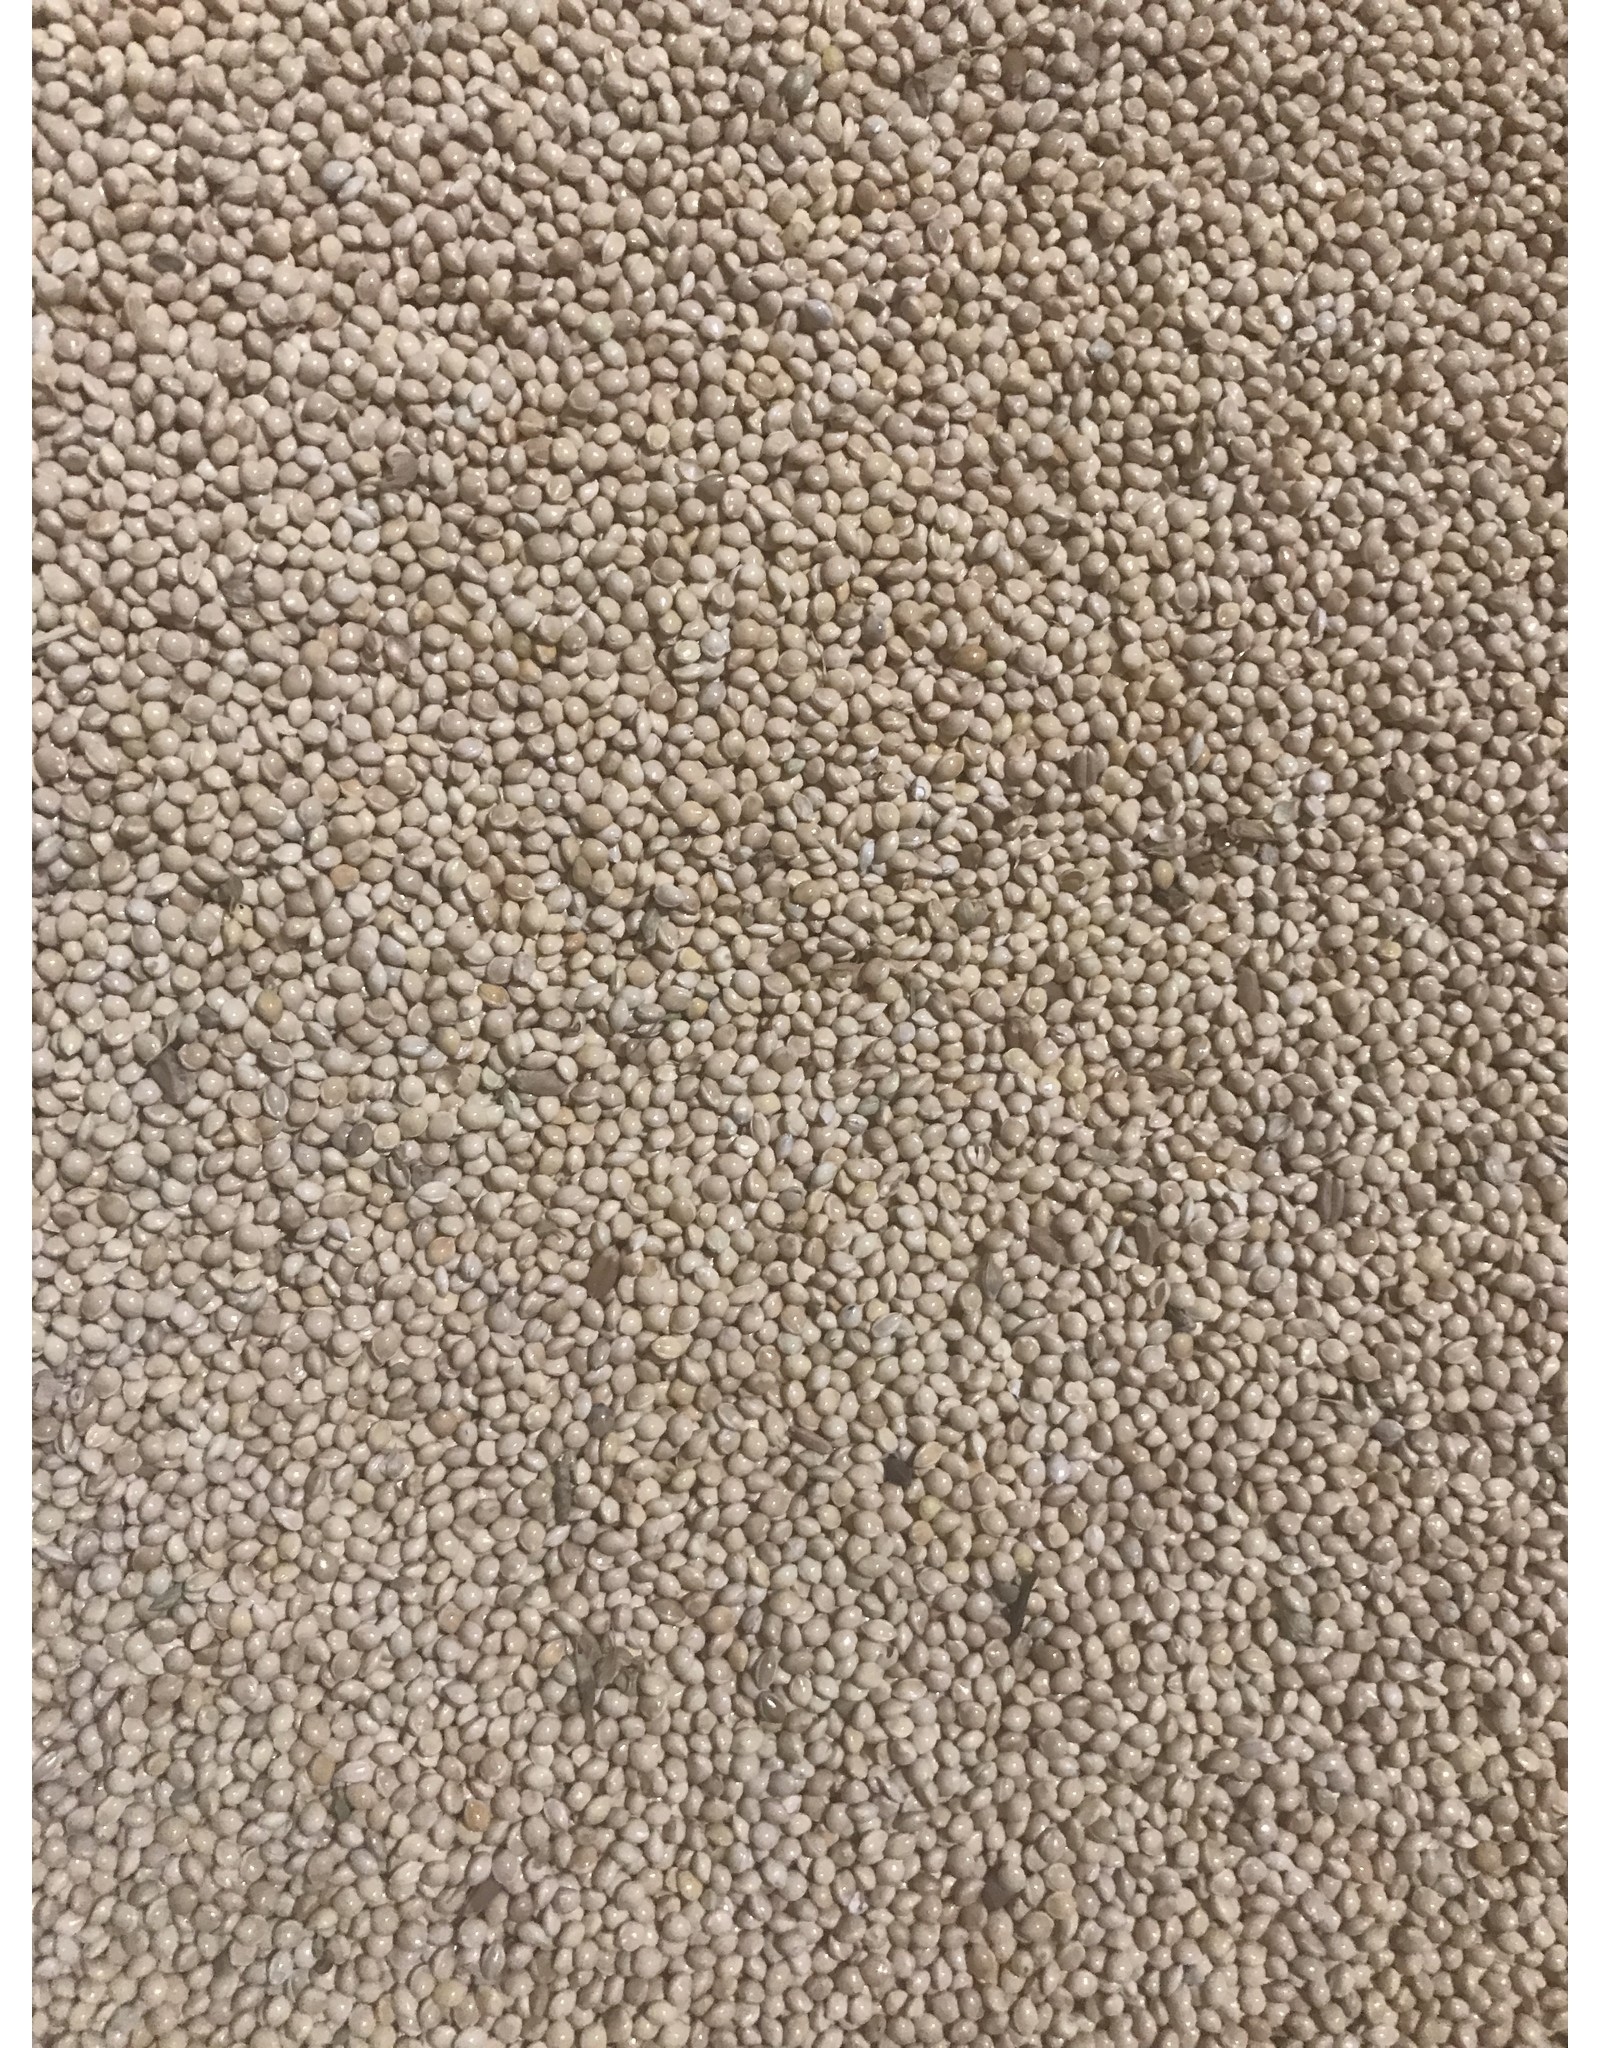 Mill Creek/Seed WMILLET7 7lb bag of white/yellow millet